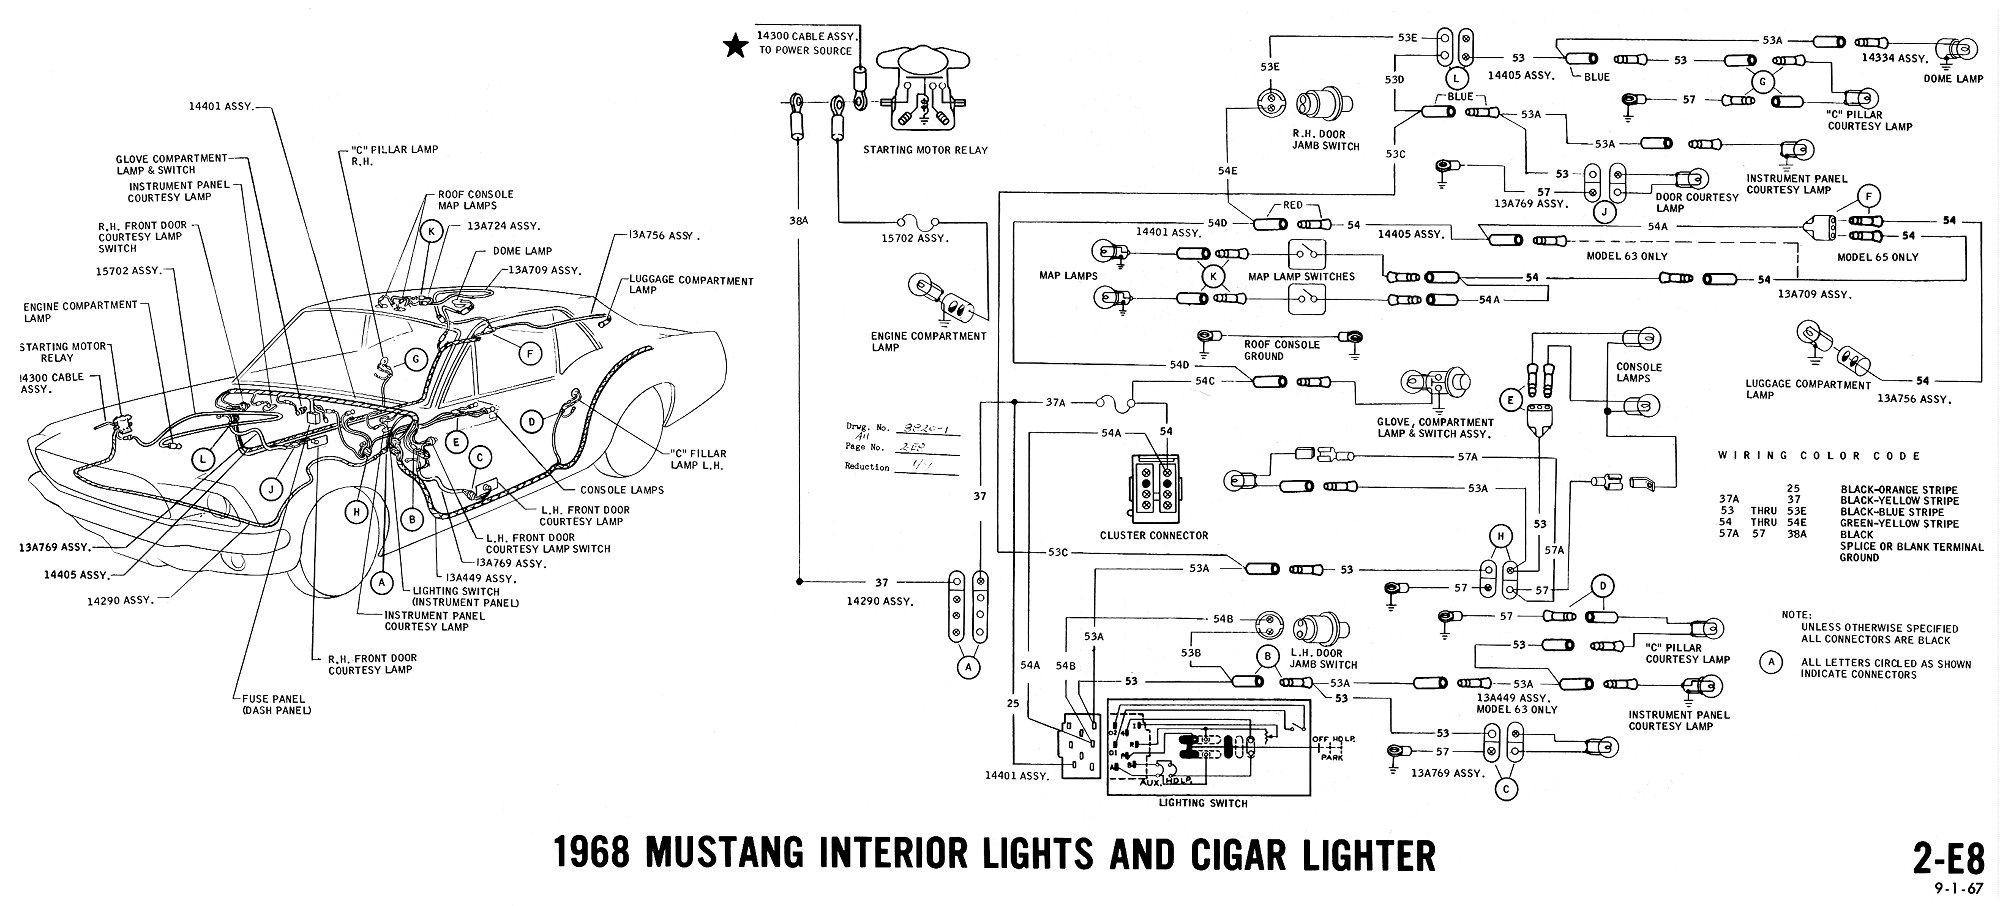 1968 Gtx Wiring Diagram | Wiring Diagram Moonie Chevy Instrument Cluster Wiring Diagram on